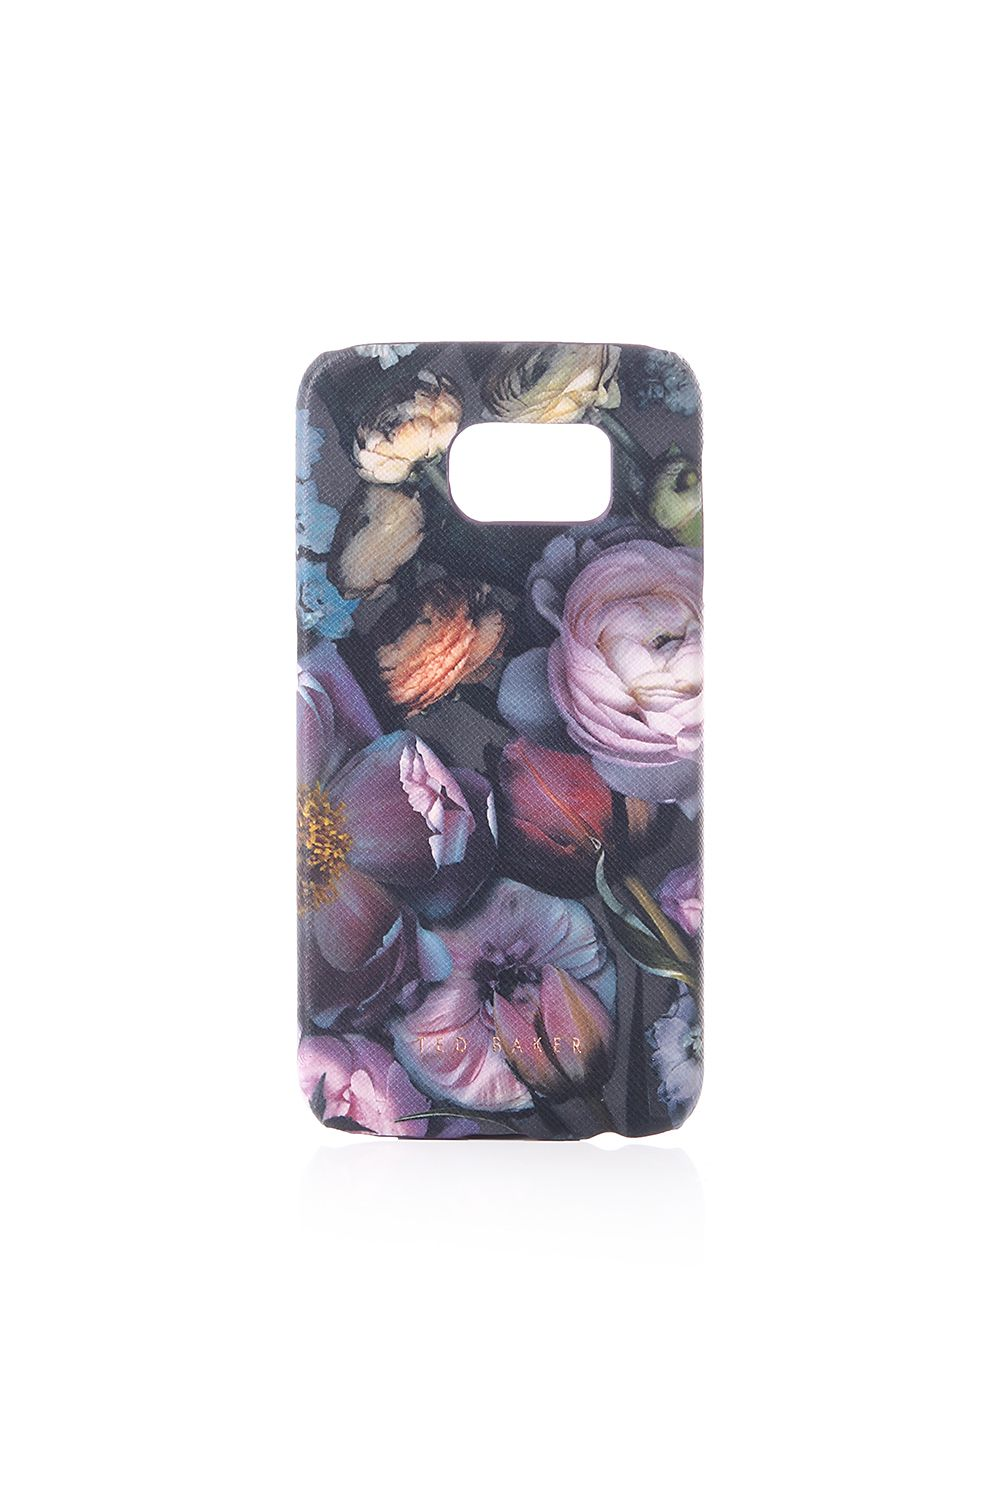 b9e1735c2f37 ted baker womens accessories meringu shadow floral samsung galaxy s6 case